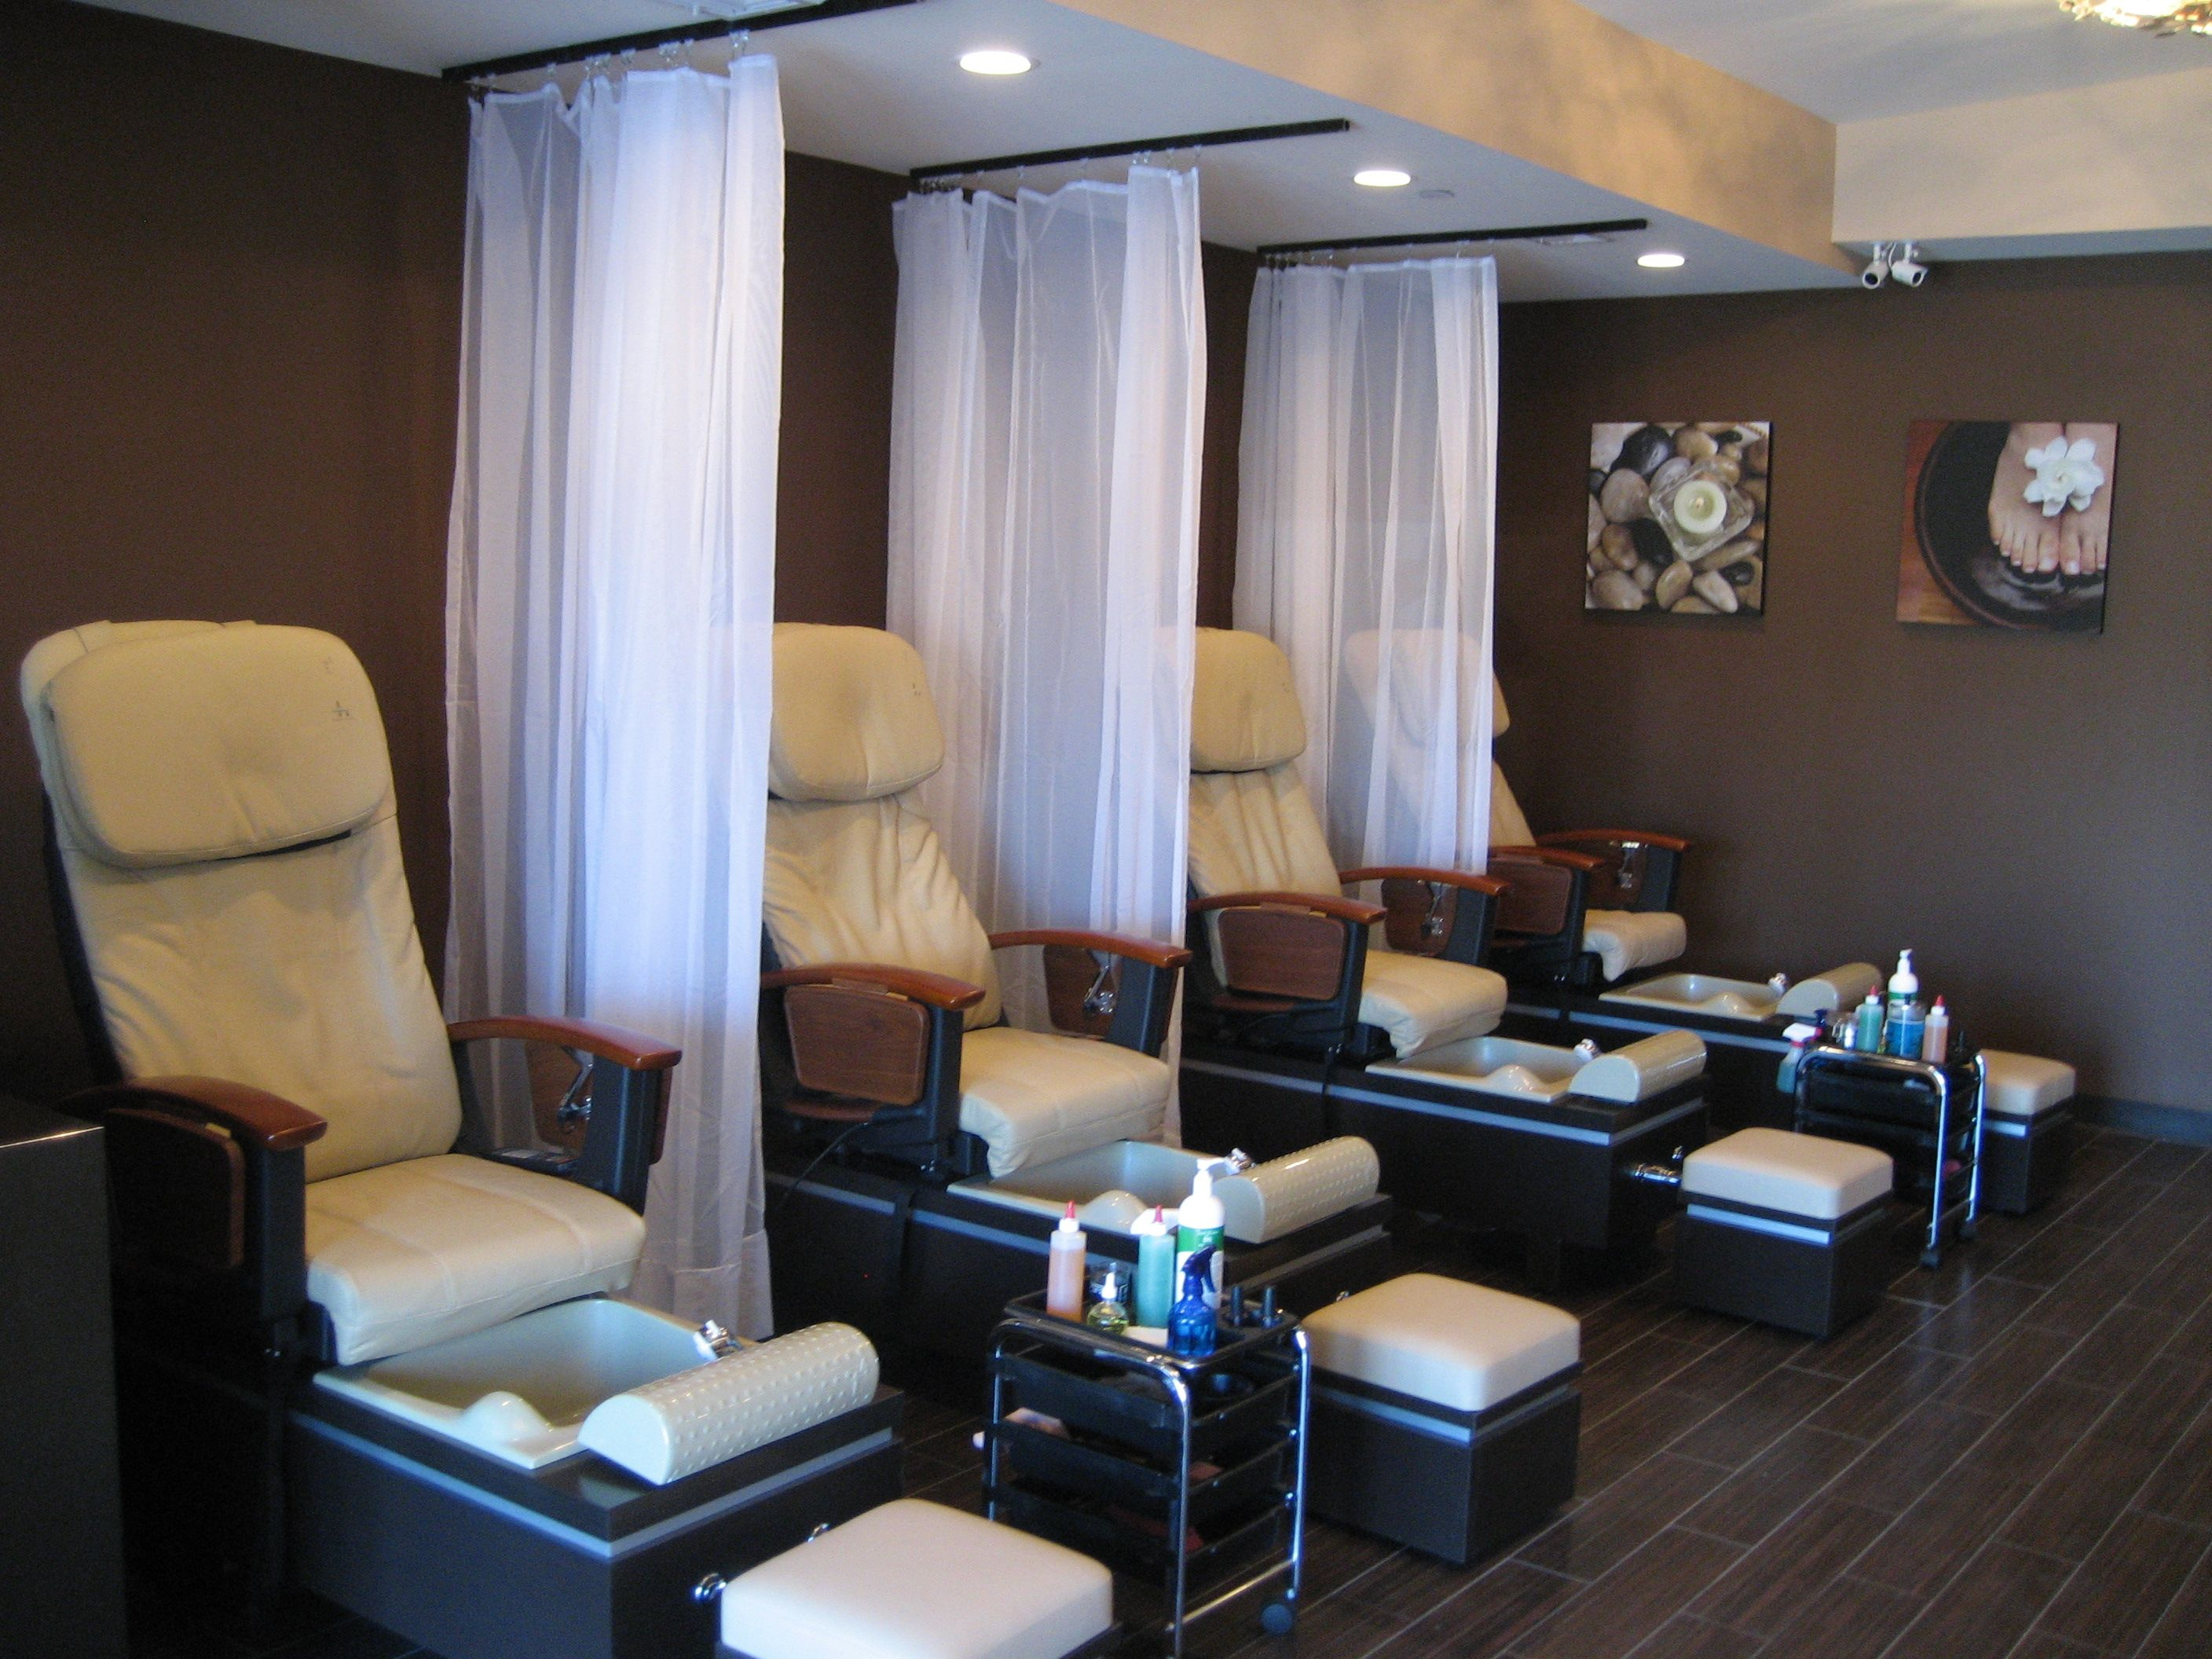 small nail salon interior designs - Google Search | misc ...